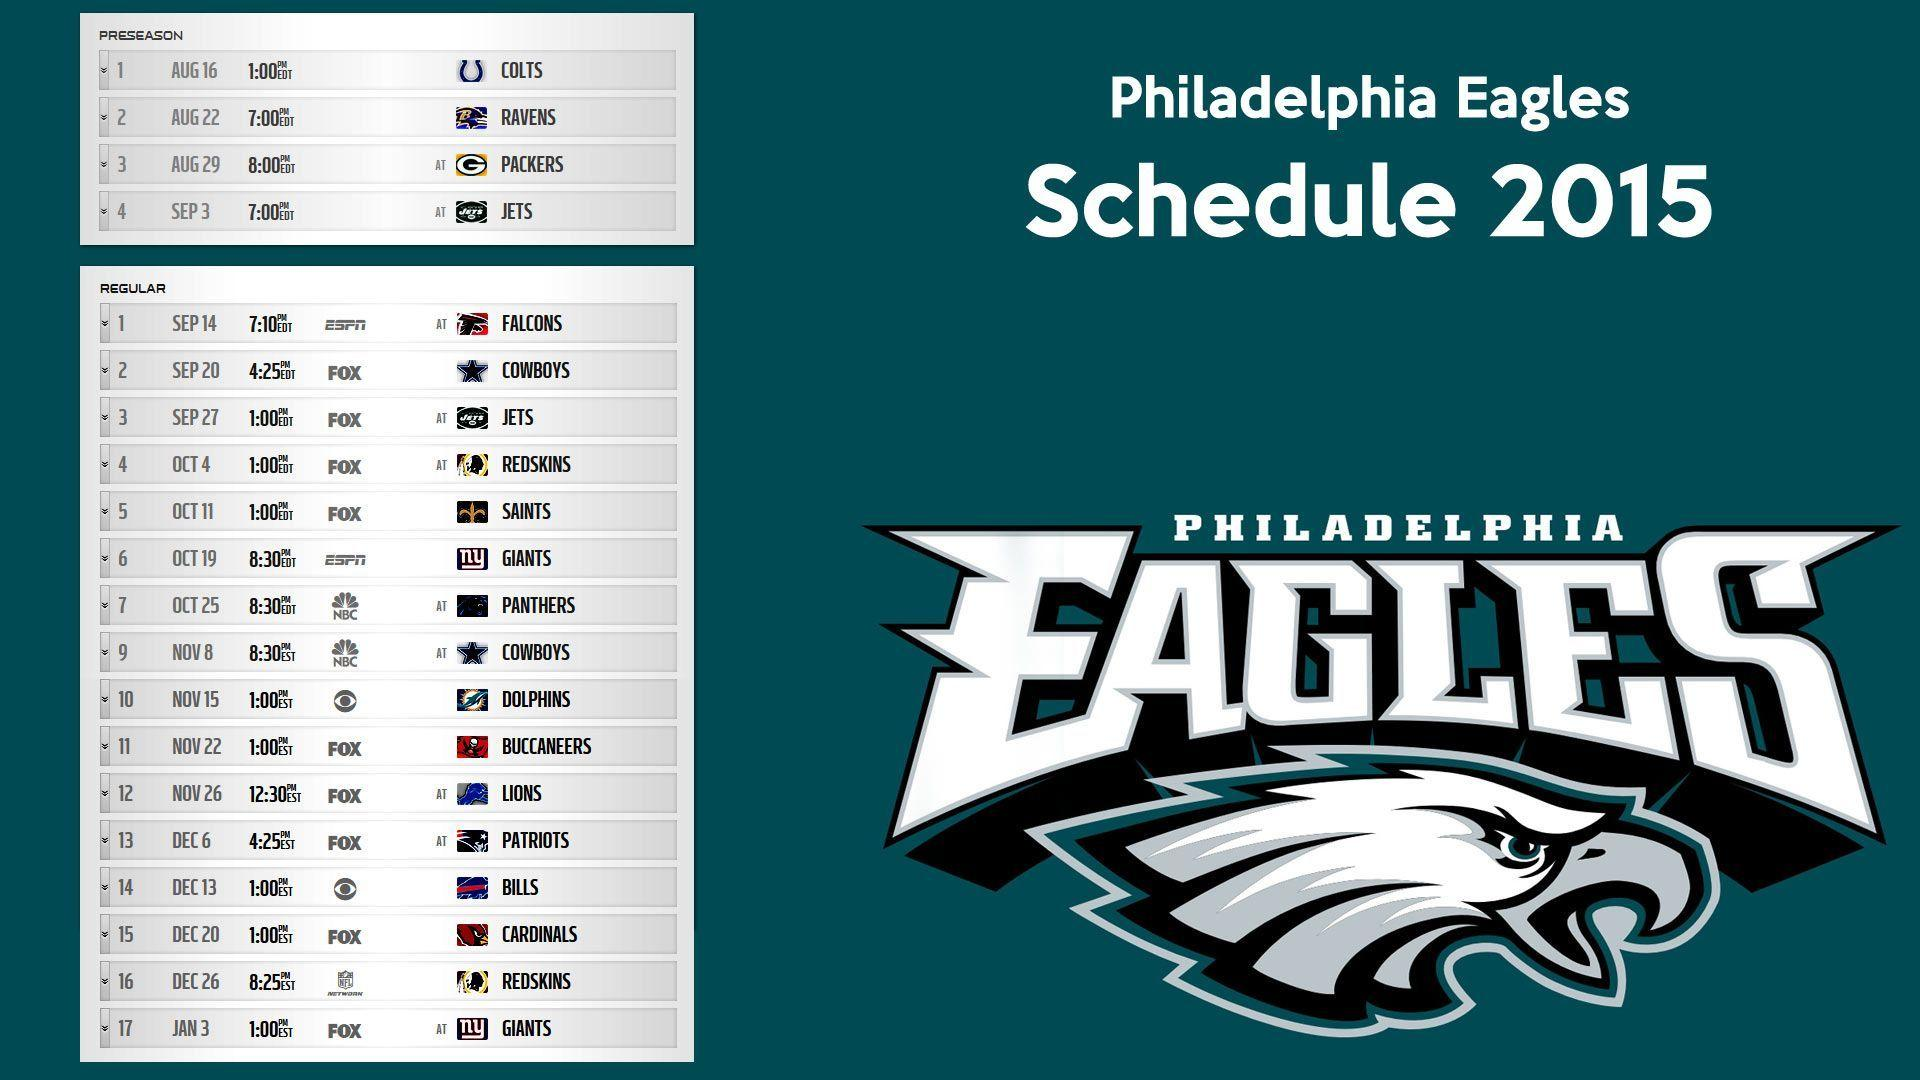 Philadelphia Eagles schedule 2015 wallpapers – Free full hd